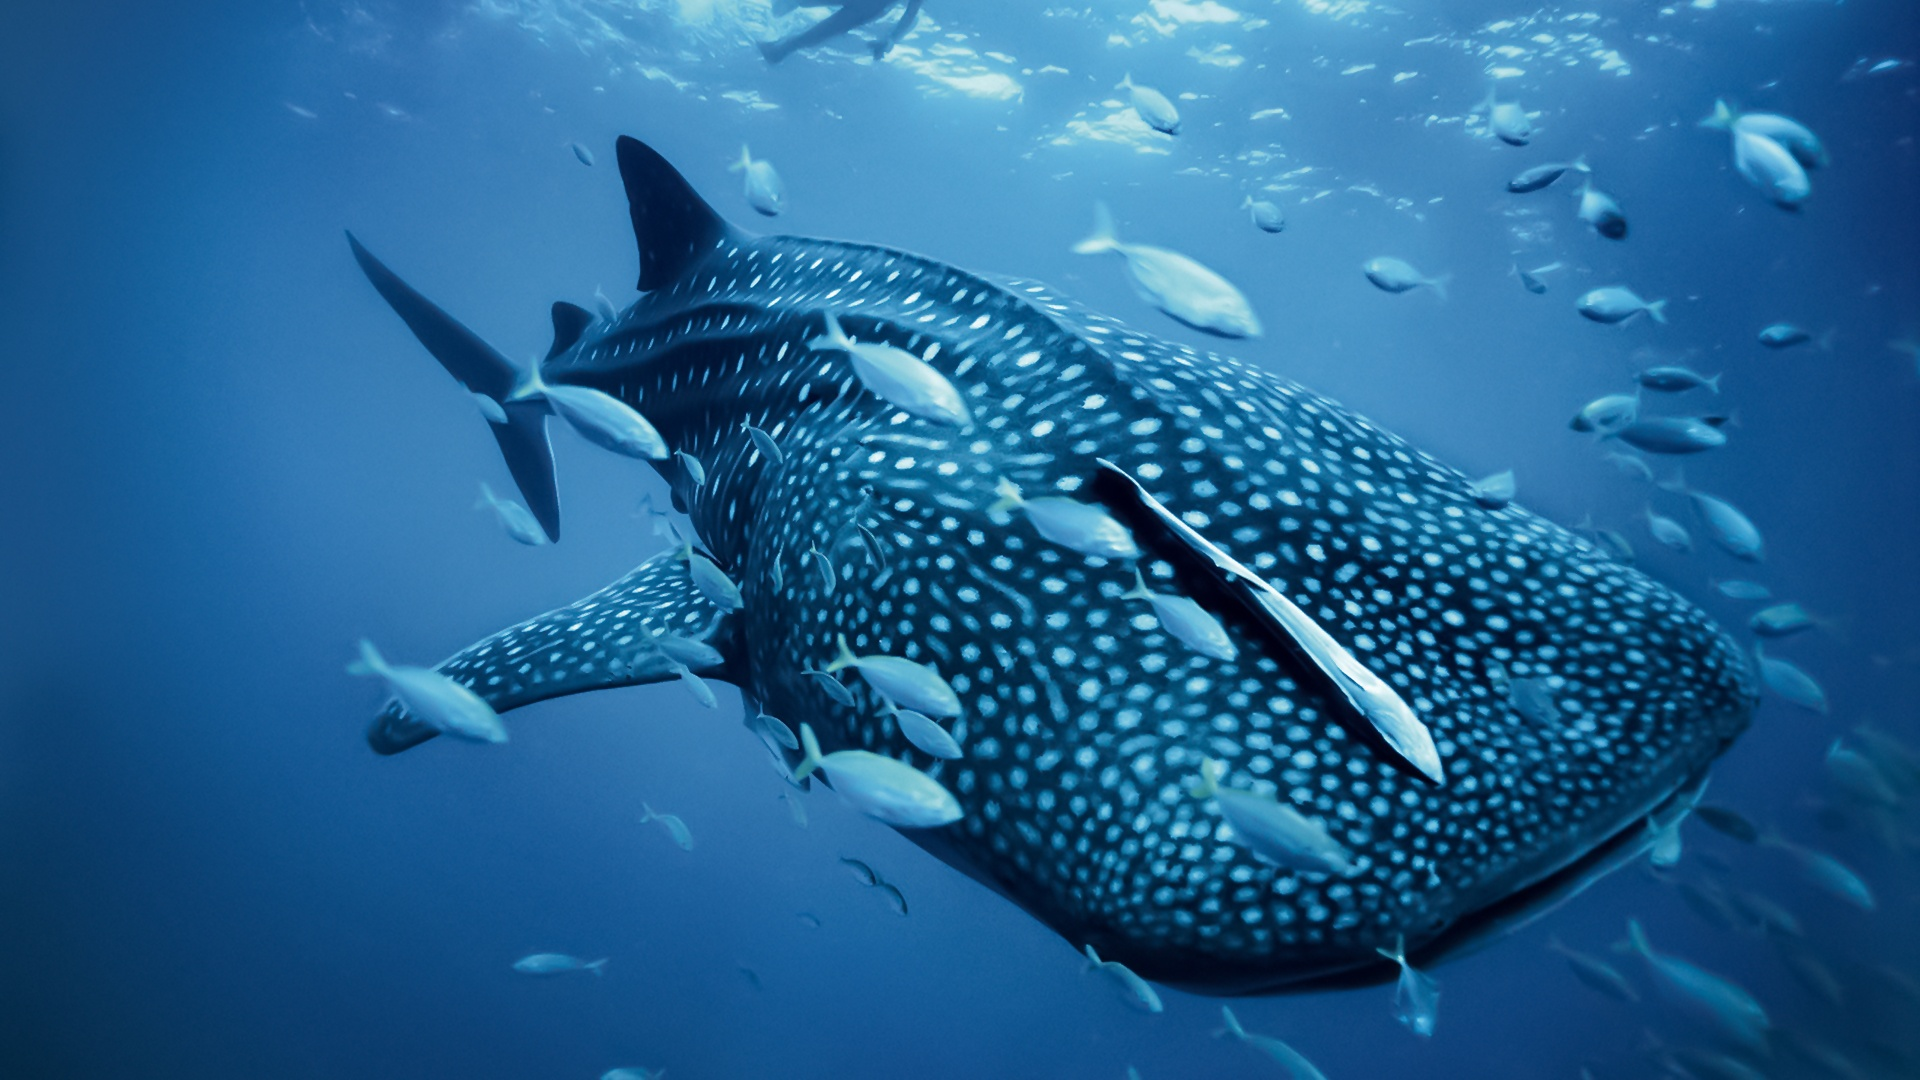 Whale shark among the fishes wallpaper